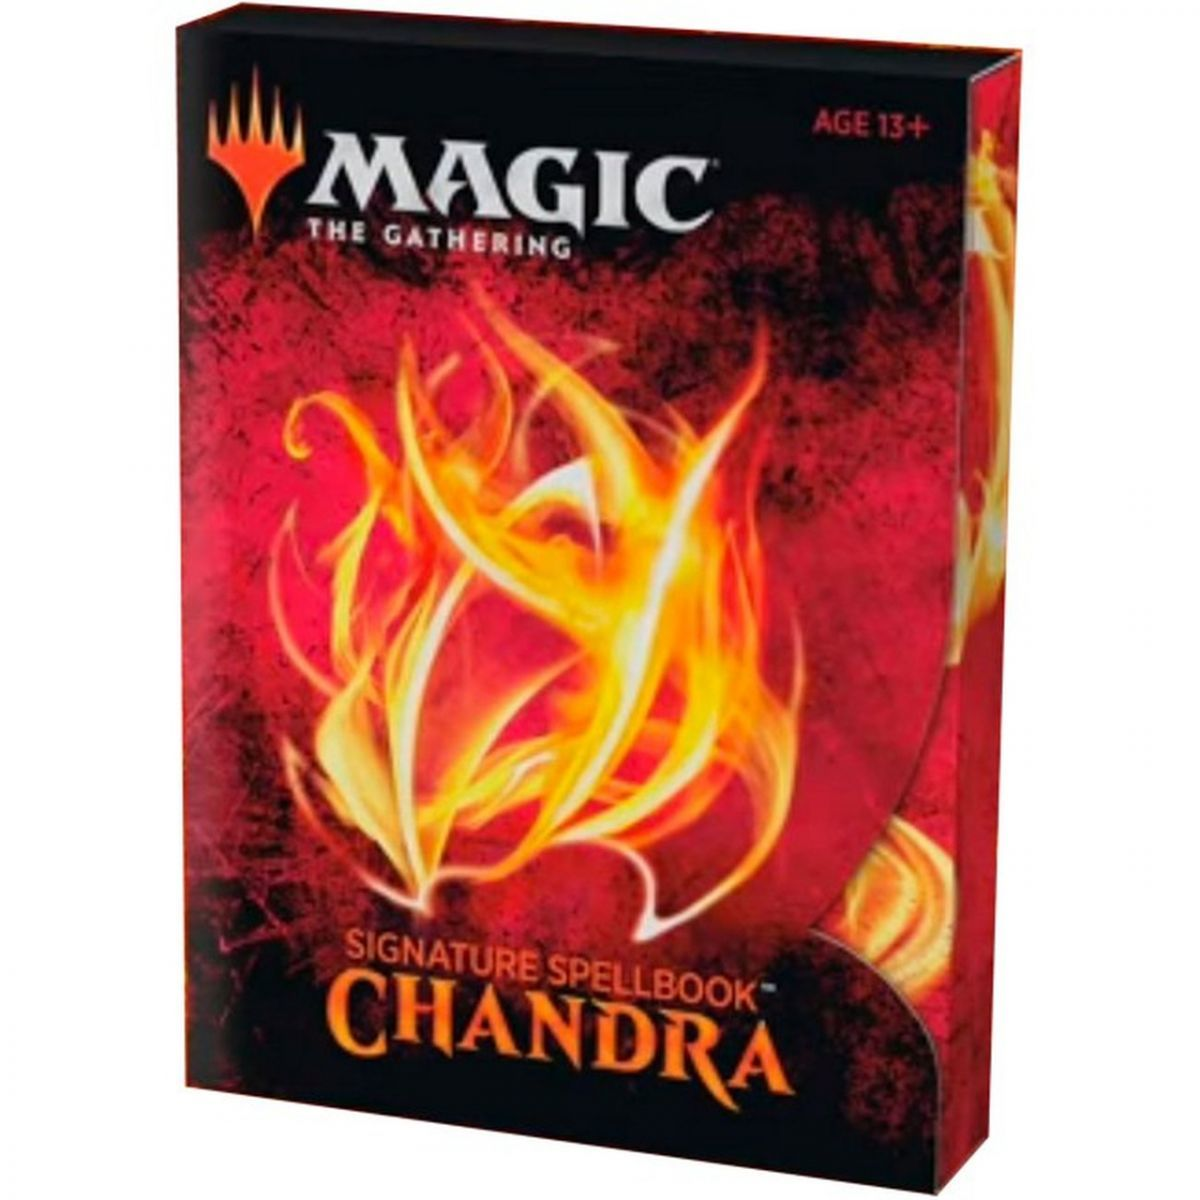 Magic The Gathering : Signature Spellbook Chandra image